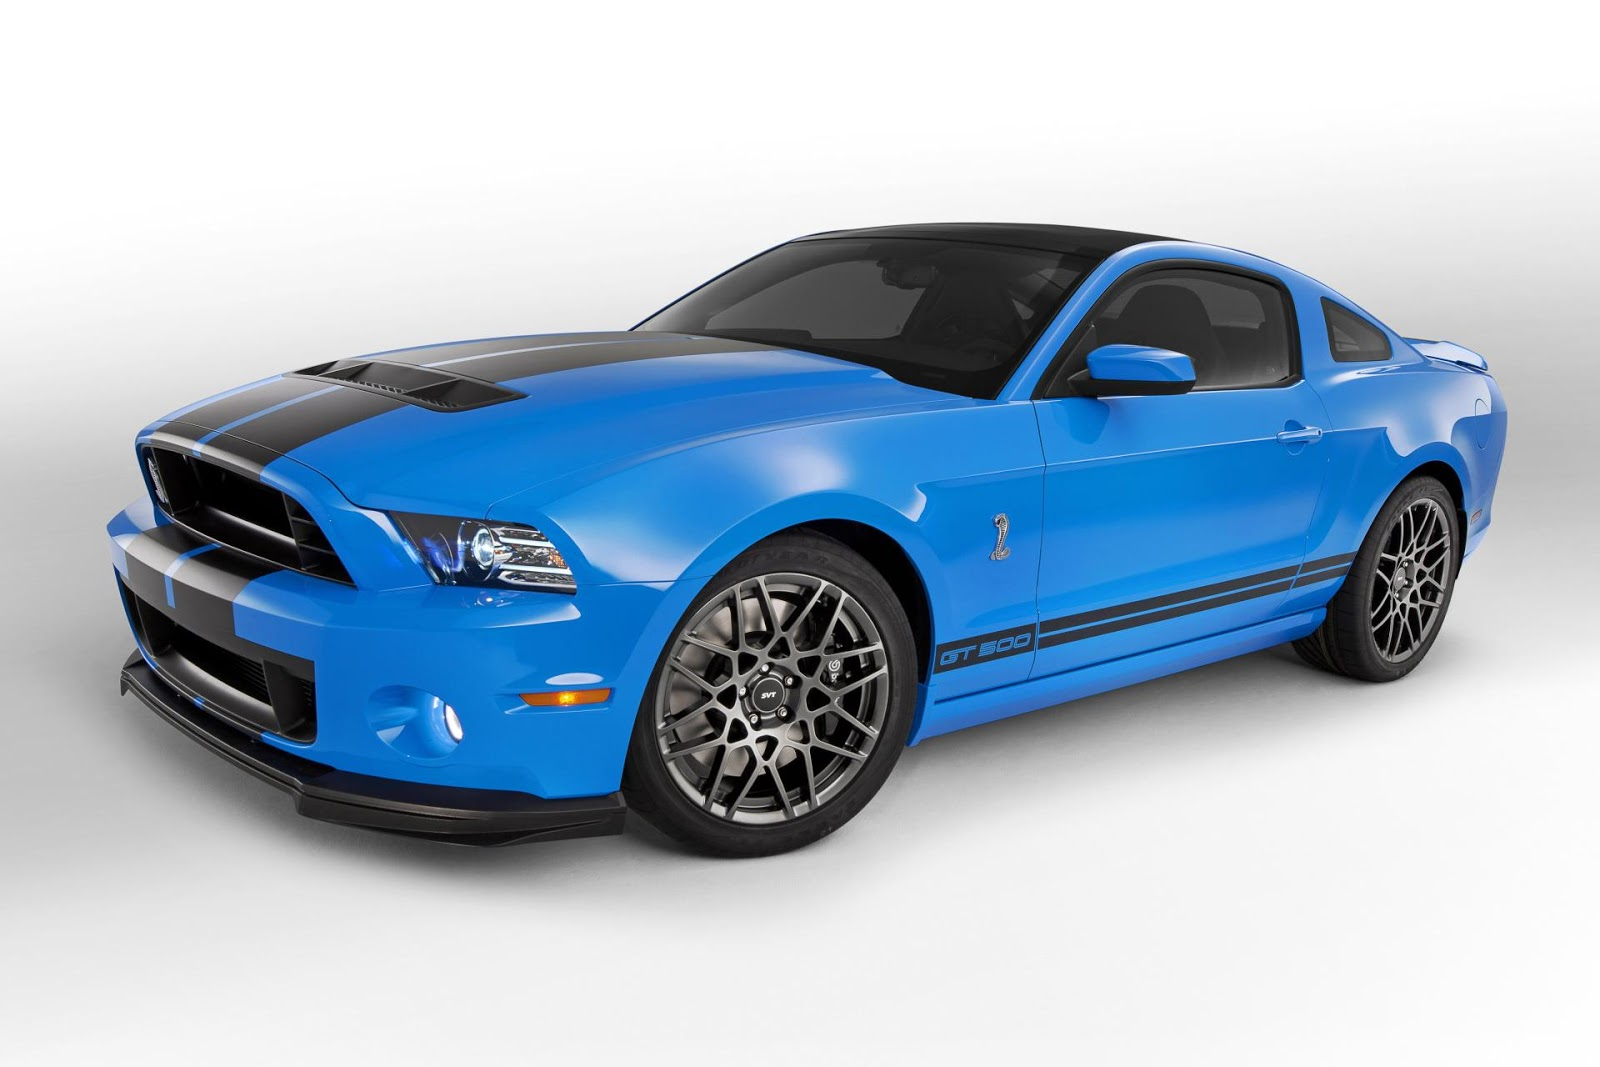 ford shelby mustang gt500 2013 hottest car wallpapers bestgarage. Black Bedroom Furniture Sets. Home Design Ideas